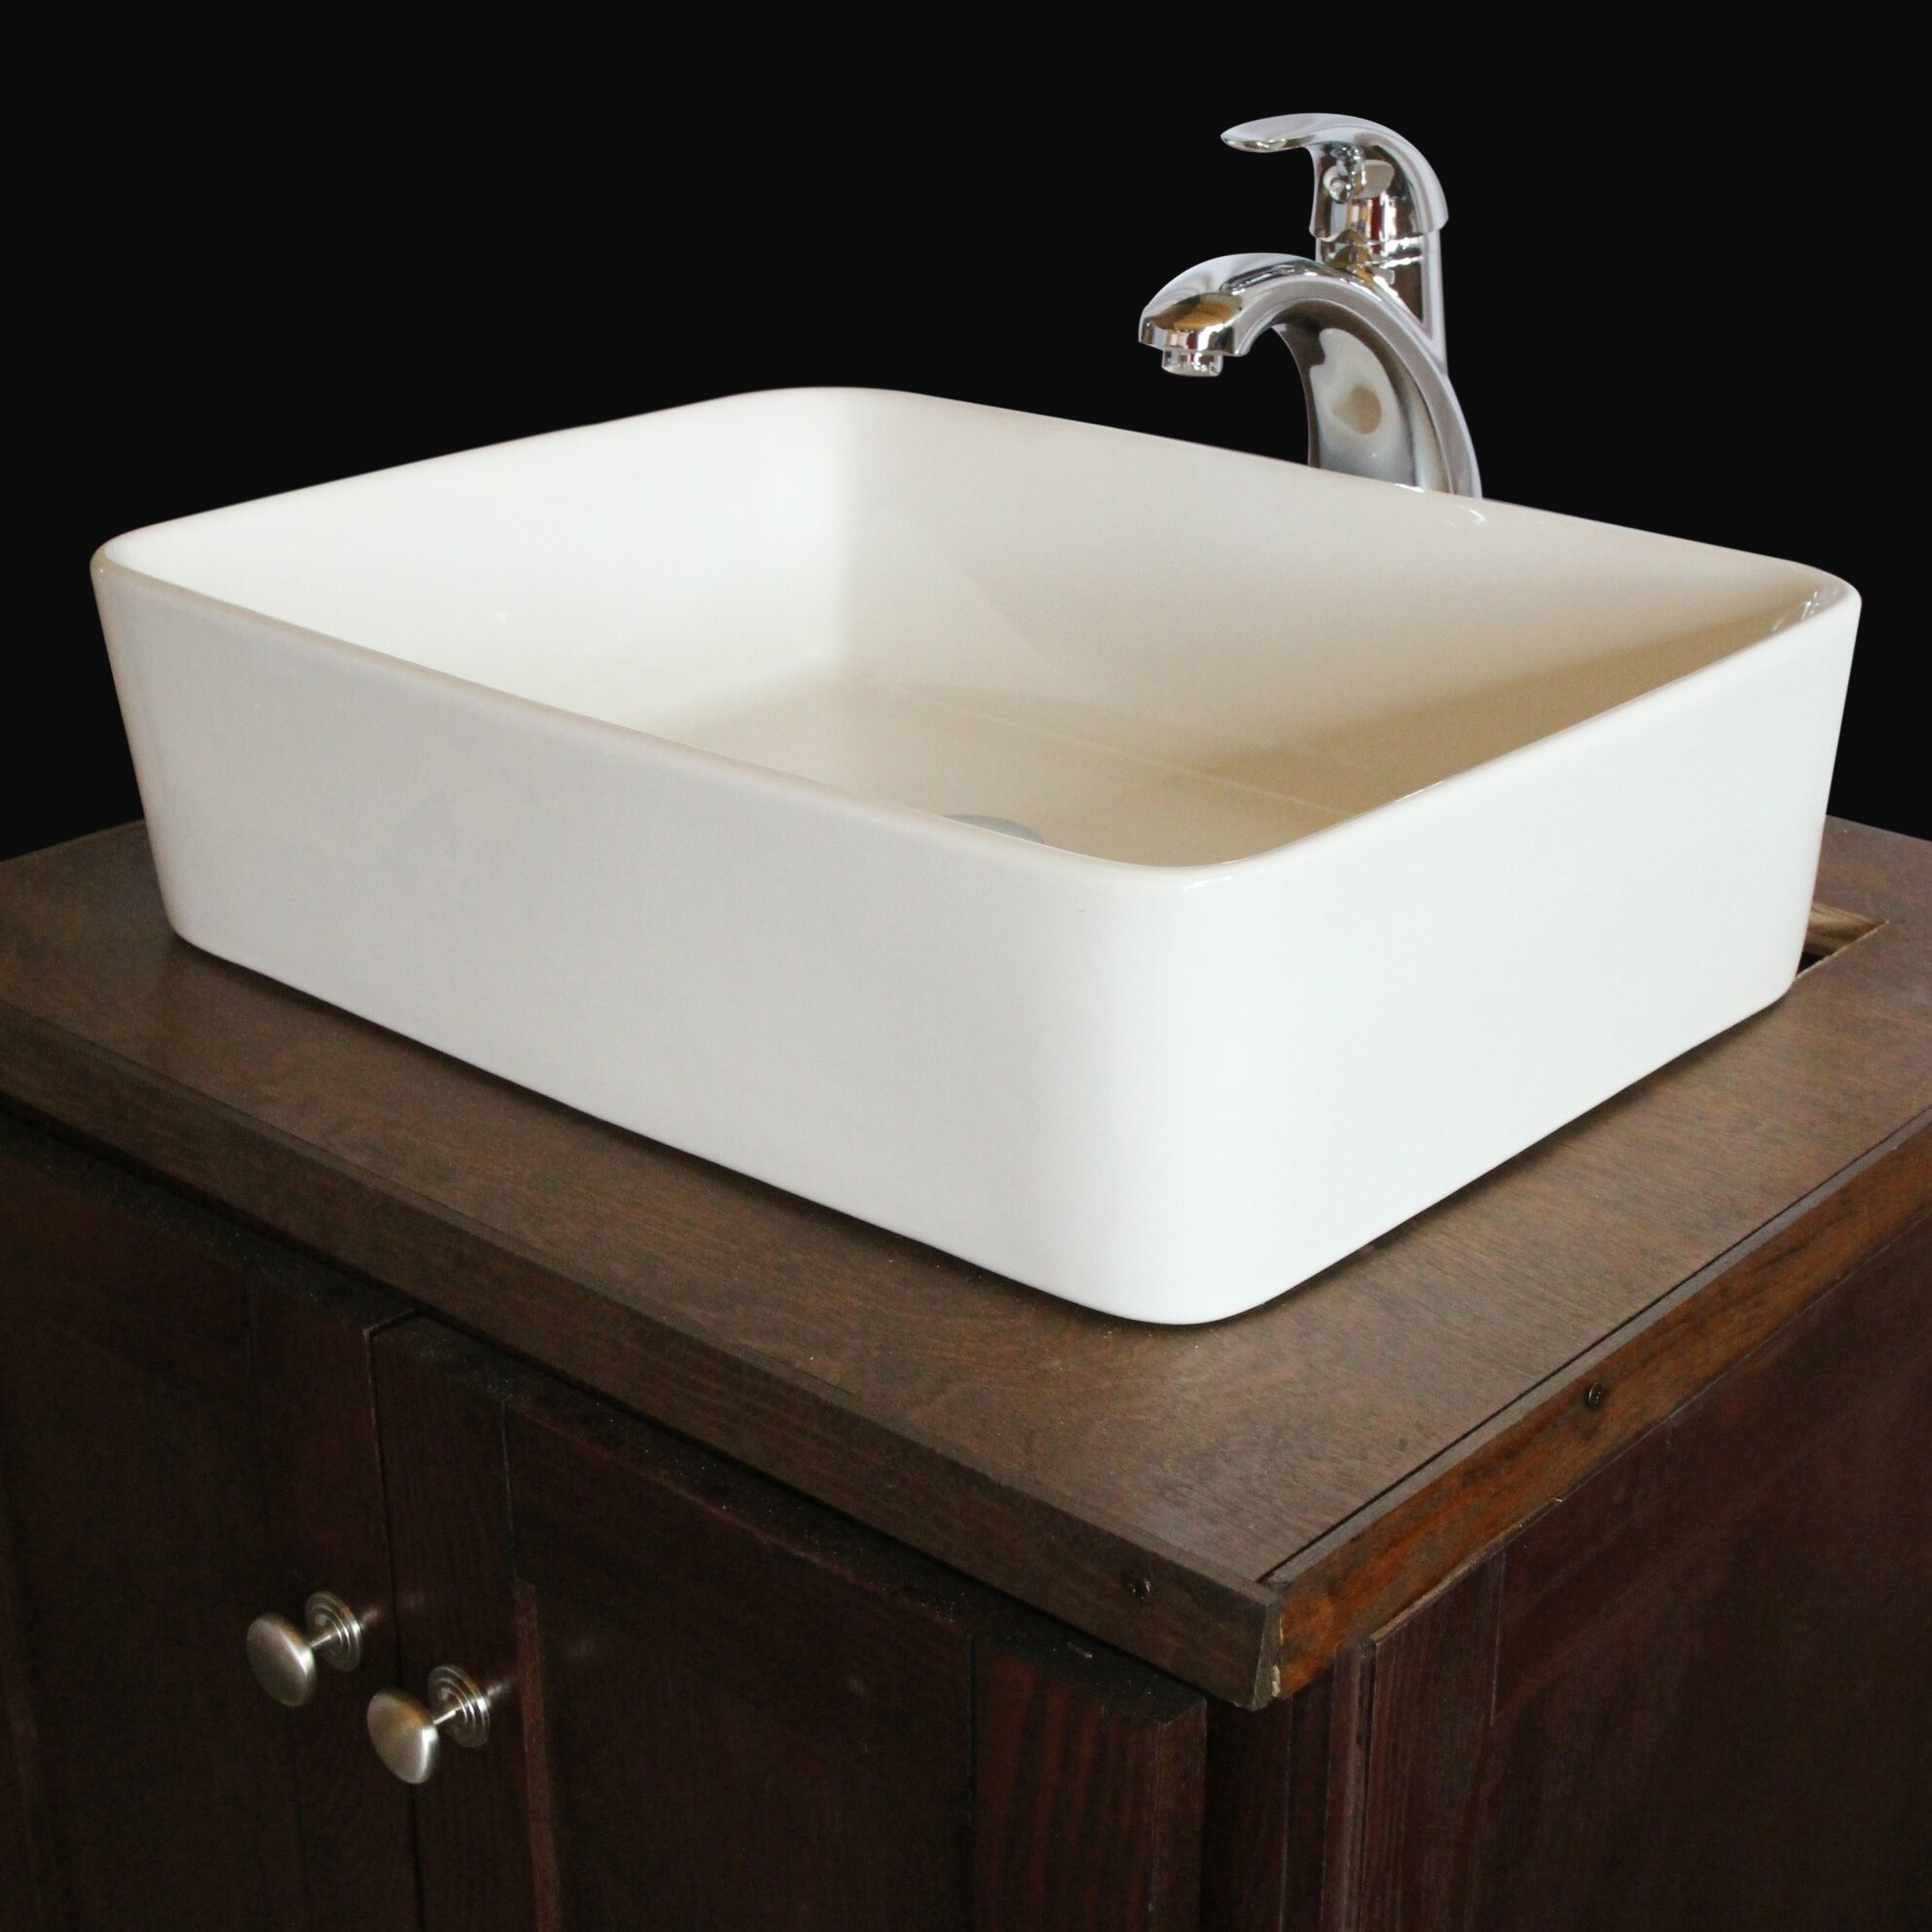 Rectangular Bathroom Sinks Ventamatic Sauberzen Vitreous China Rectangular Vessel Bathroom